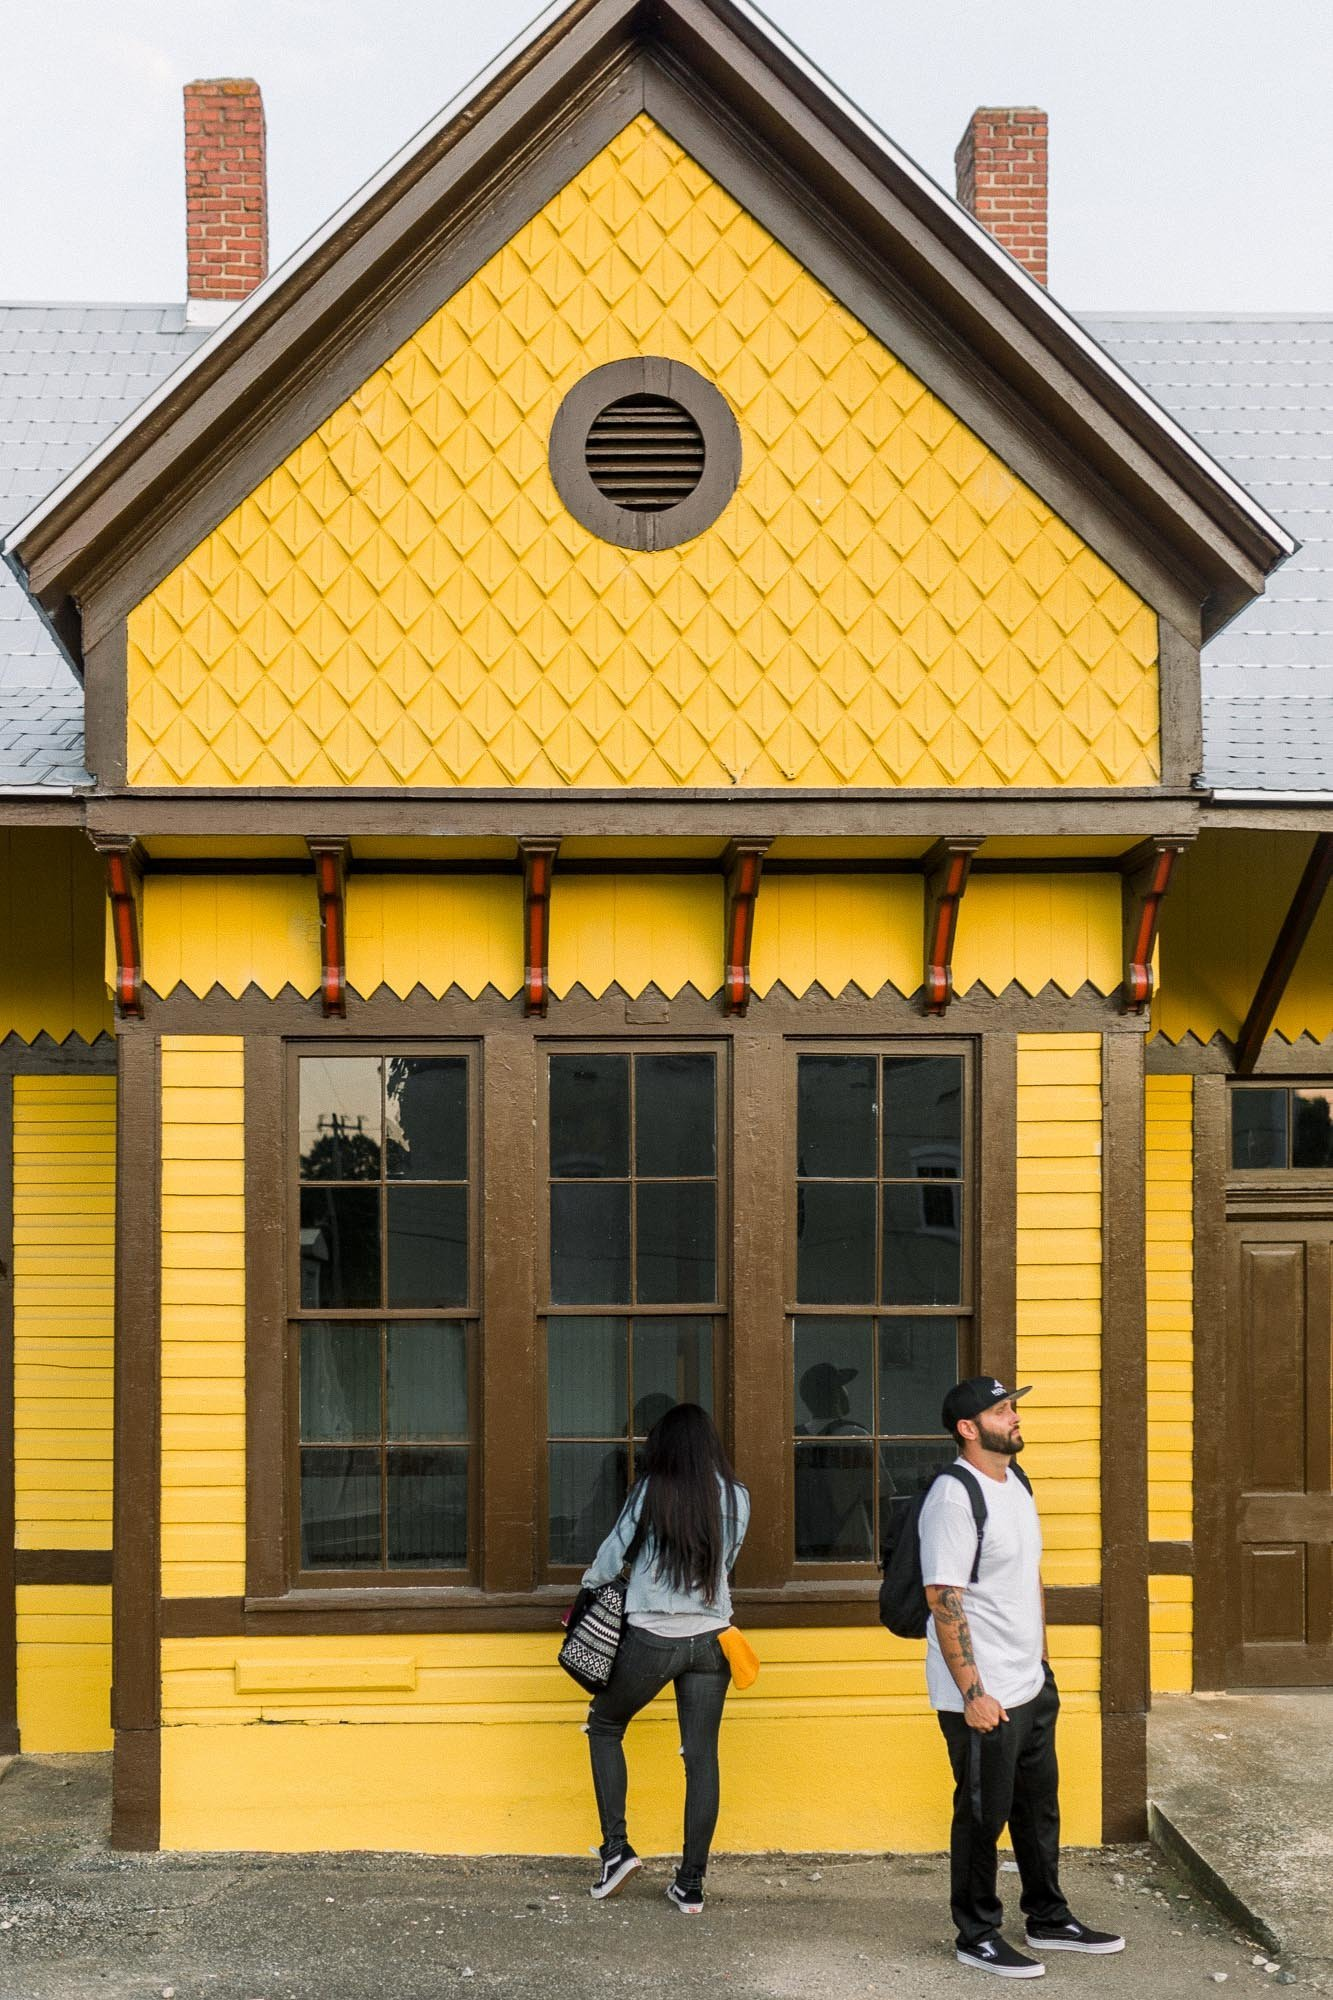 Engagement session in yellow train station captured by Staci Addison Photography